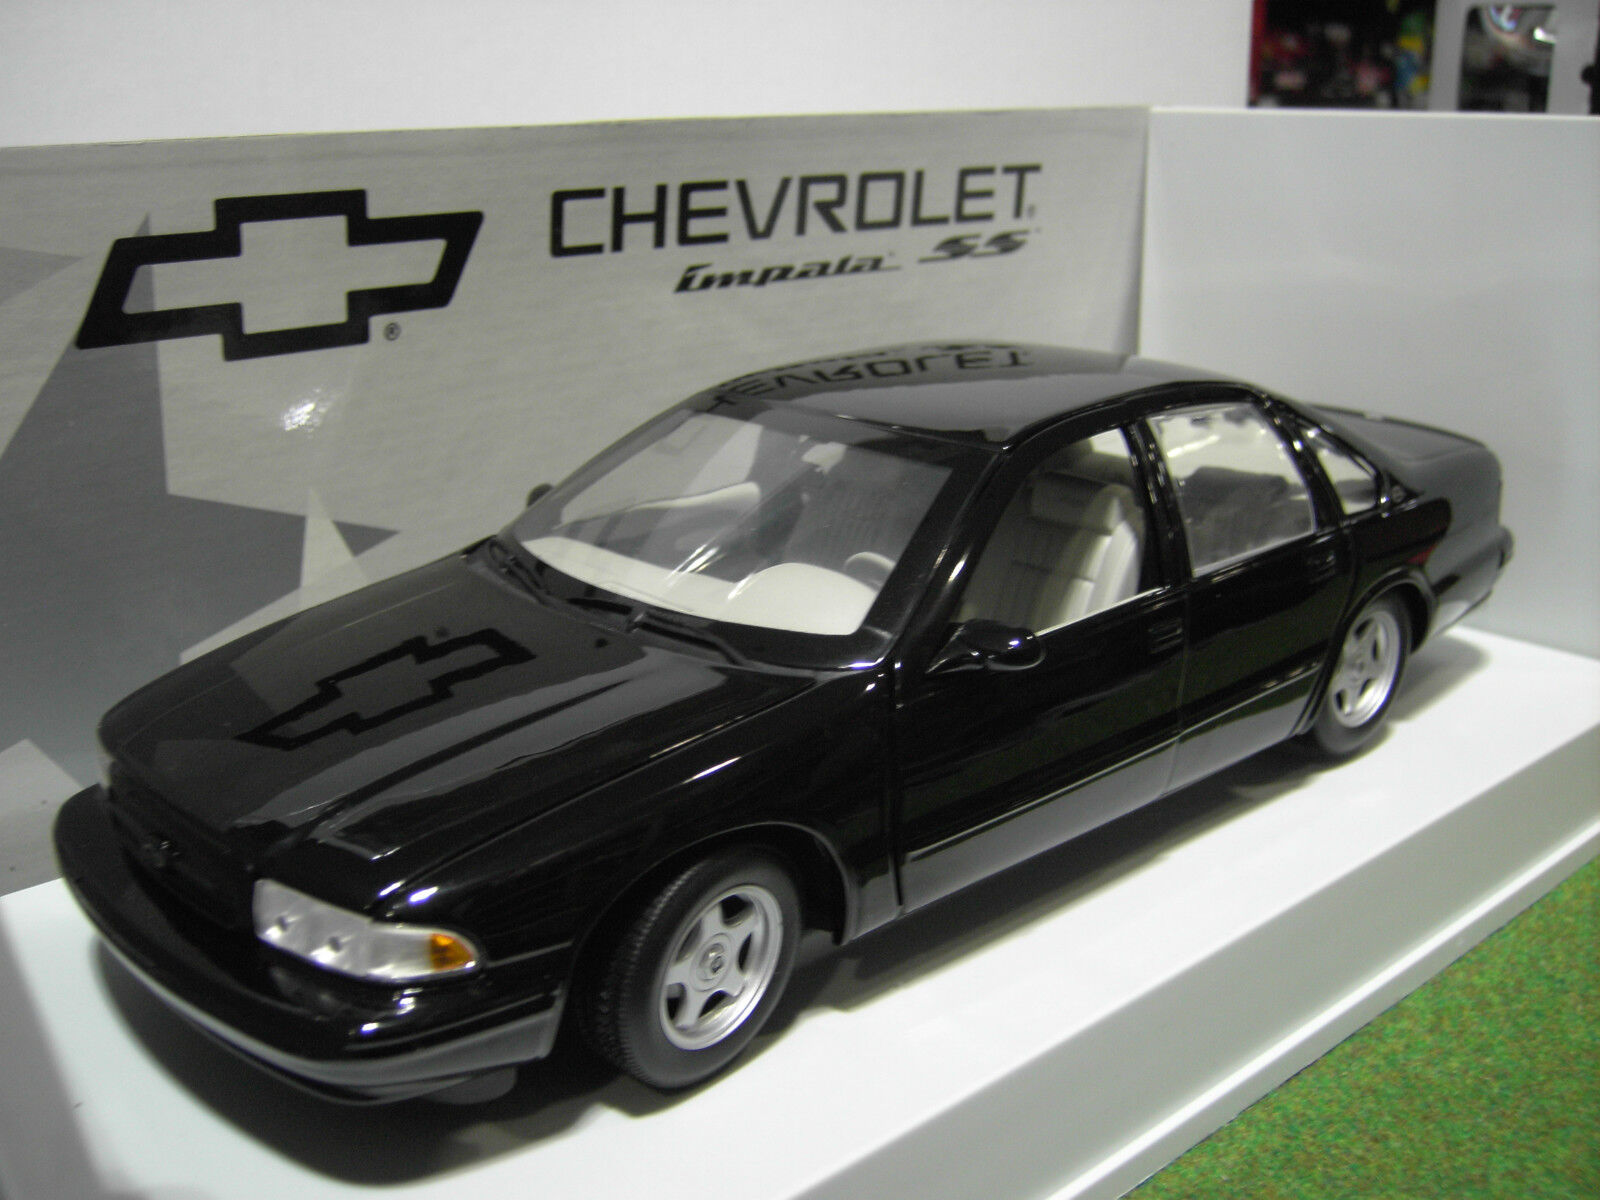 CHEVROLET IMPALA SS 1996 neroe 1 18 UT Models 21031 voiture miniature collection